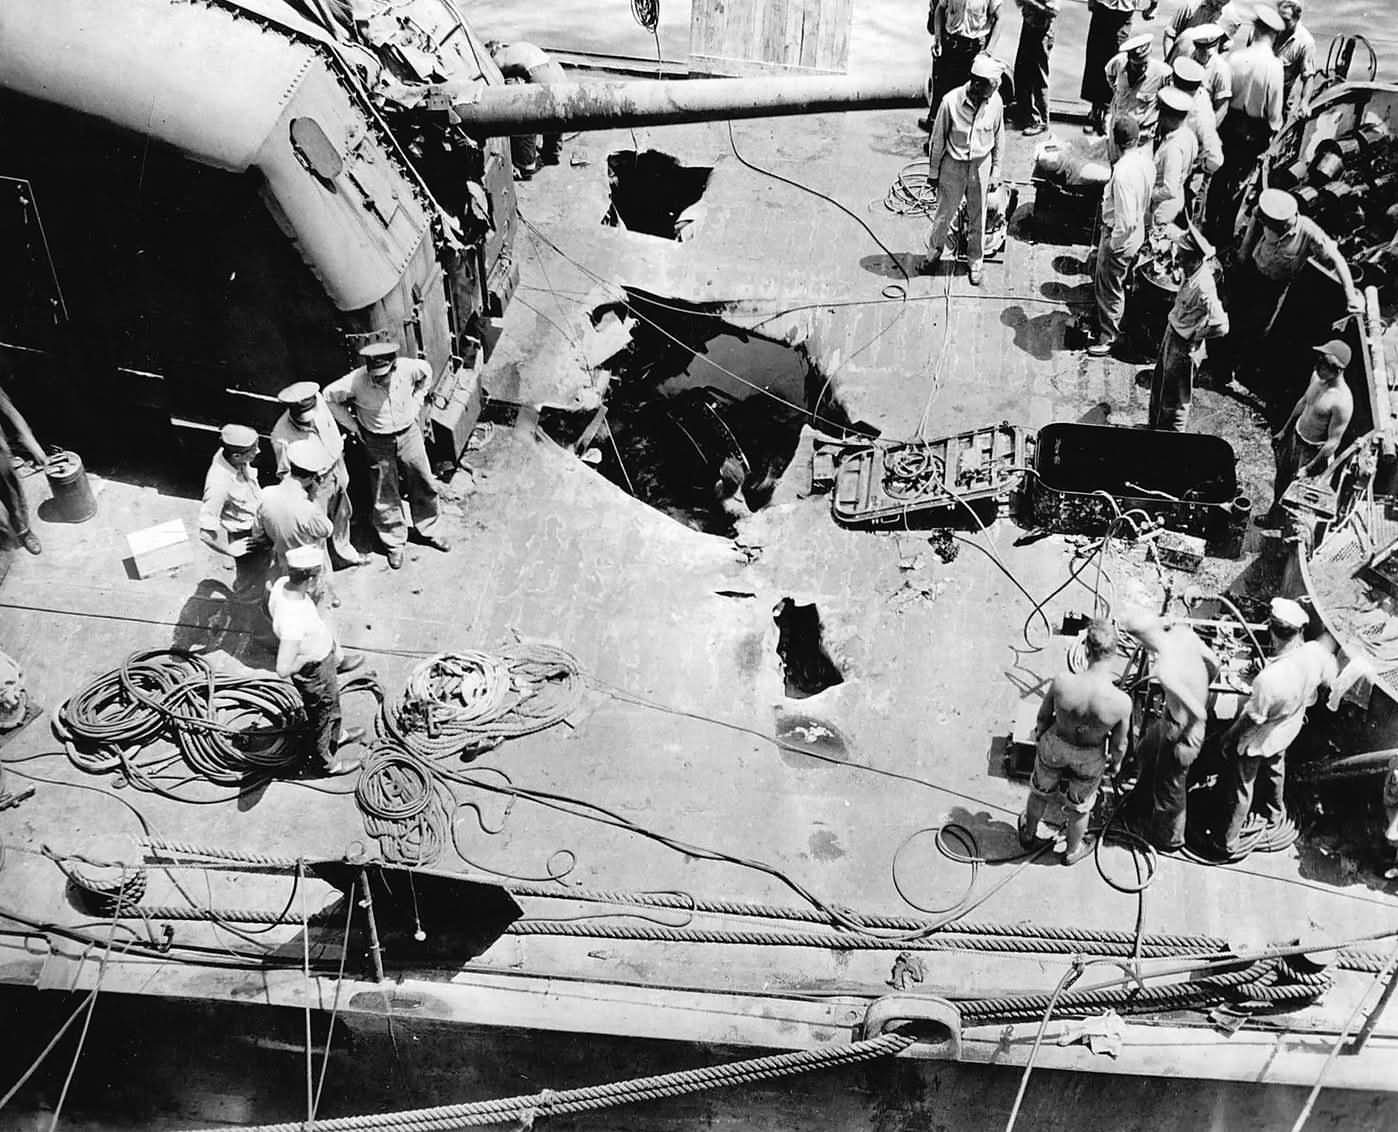 Destroyer USS Halsey Powell DD-686 After Kamikaze Attack Off Kyushu 1945